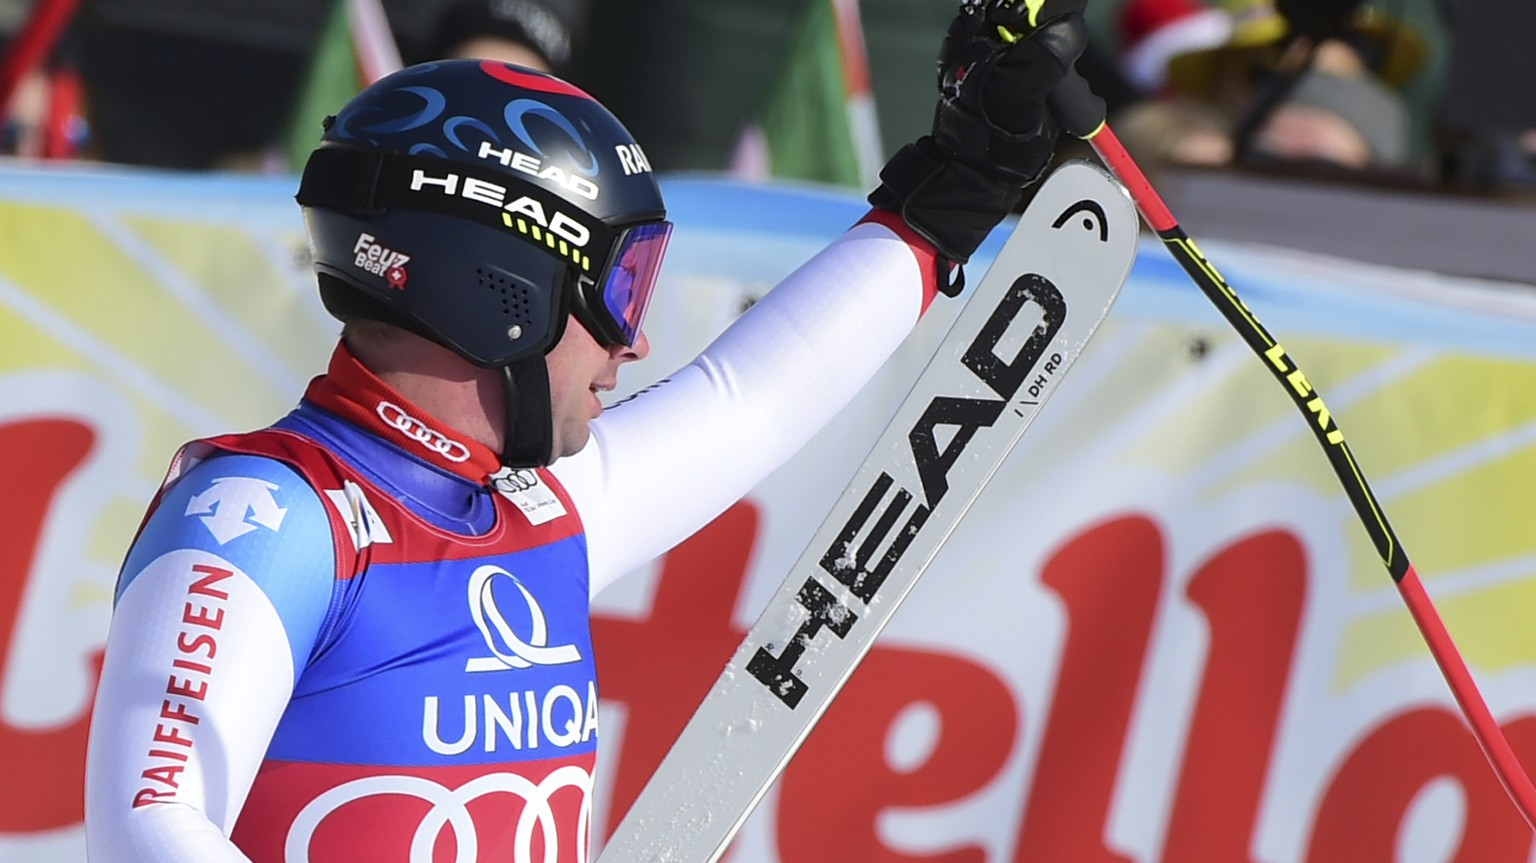 Switzerland's Beat Feuz reacts at finish line after completing an alpine ski, men's World Cup downhill, in Saalbach, Austria, Thursday, Feb. 13, 2020. (AP Photo/Marco Tacca)